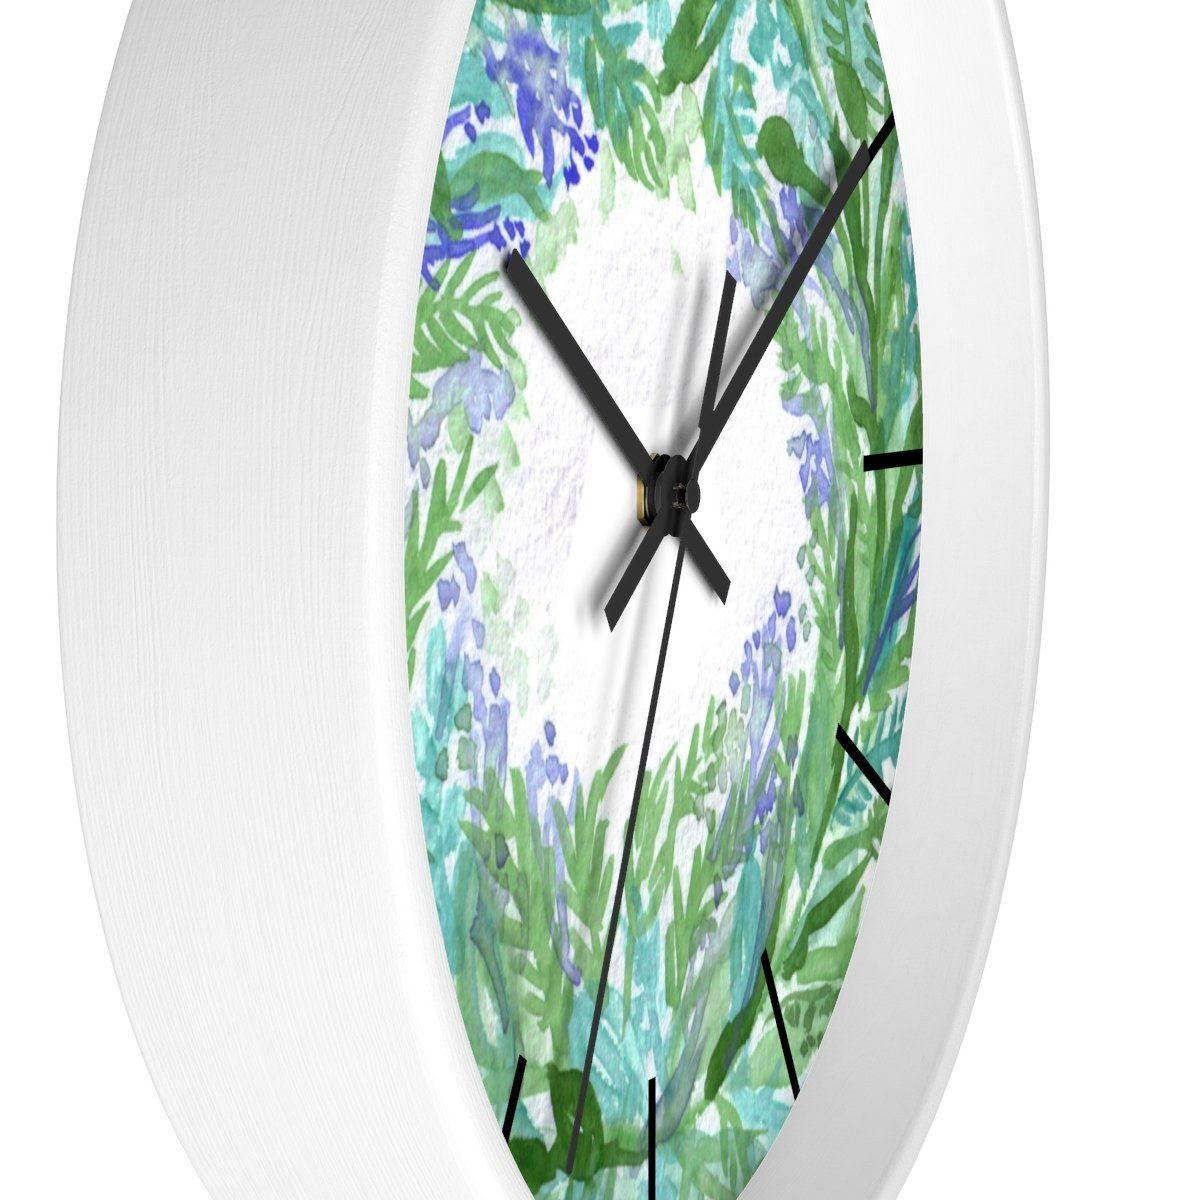 French Lavender Purple Floral Rose Print 10 Inch Diameter Wall Clock Made In Usa Wall Clock How To Make Wall Clock Lavender Walls